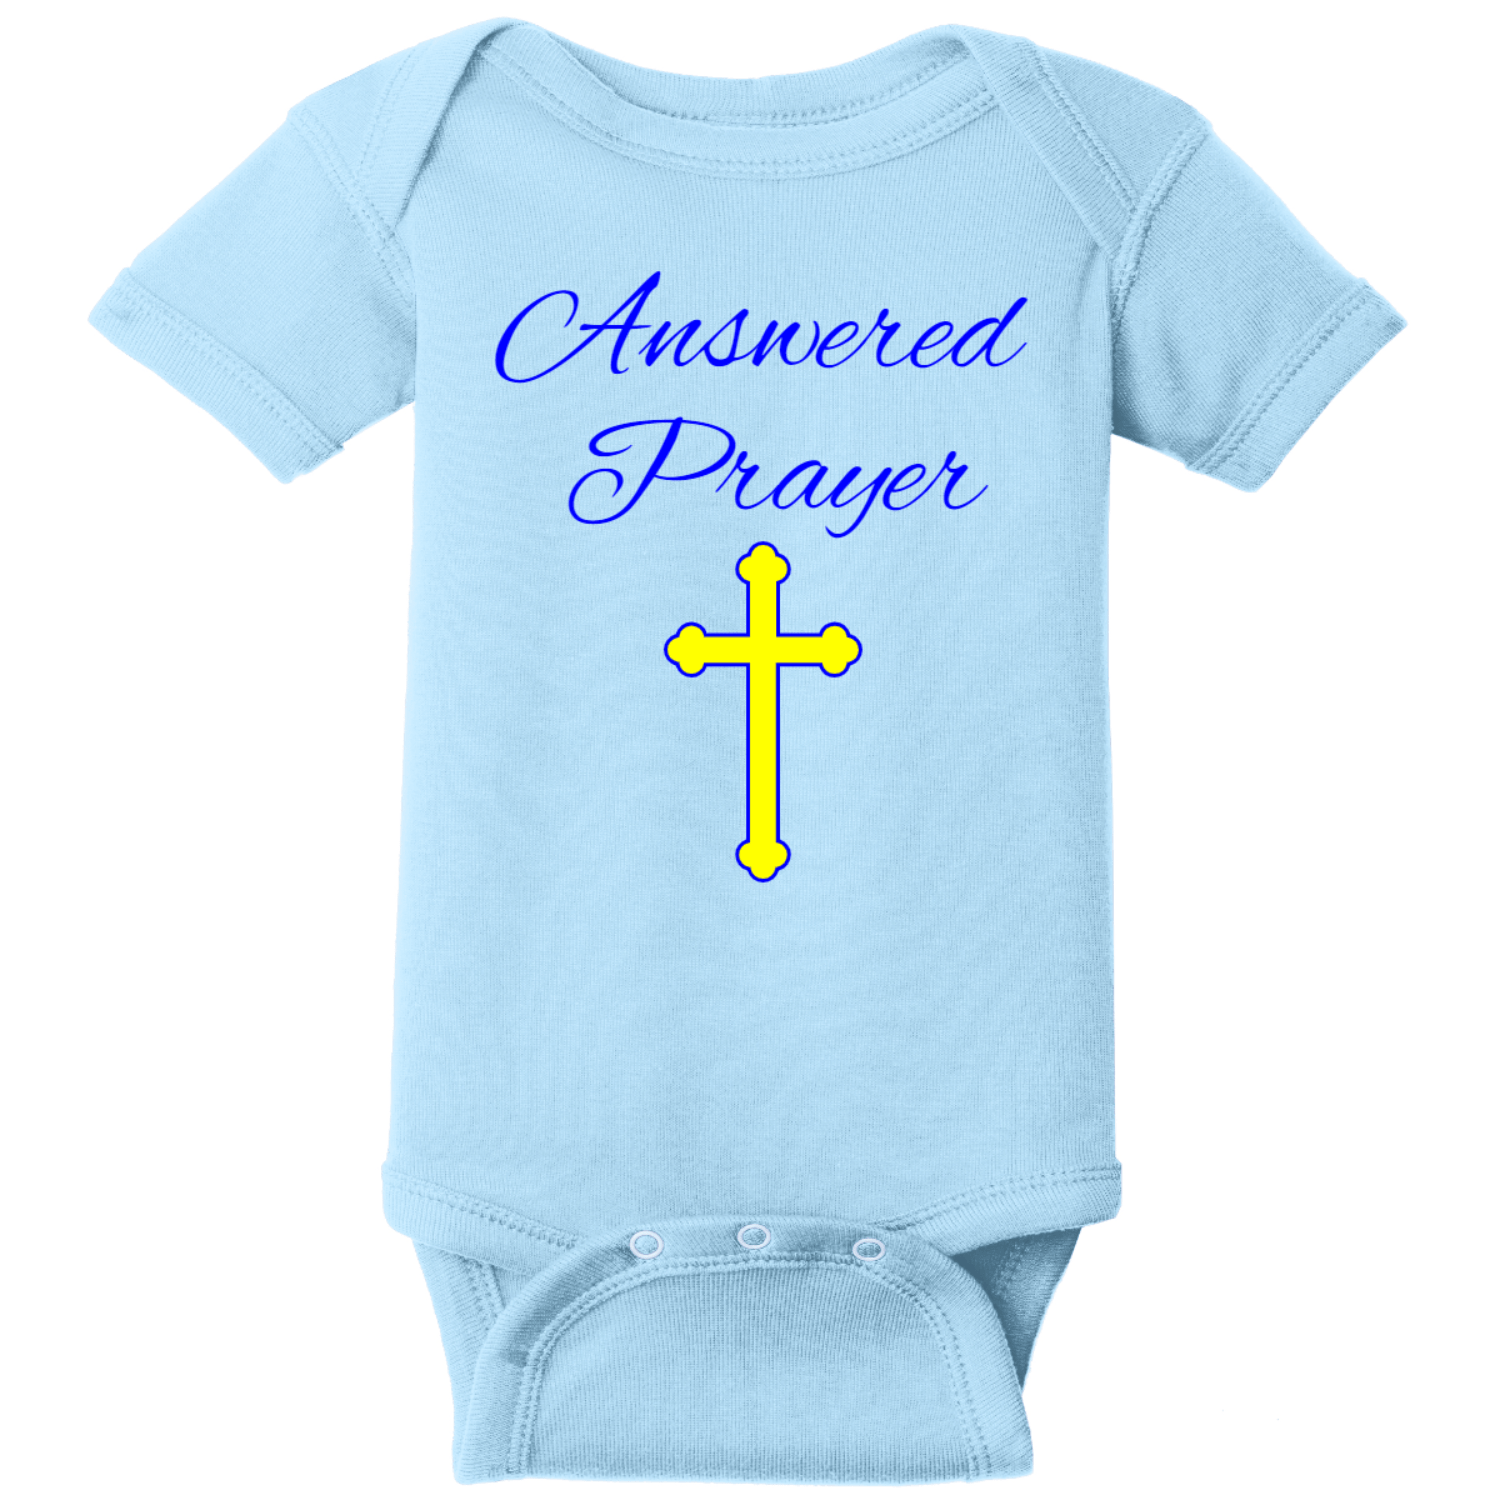 Prayer Answered Infant Onsie Light Blue Rabbit Skins Infant Short Sleeve Infant Rib Bodysuit RS4400